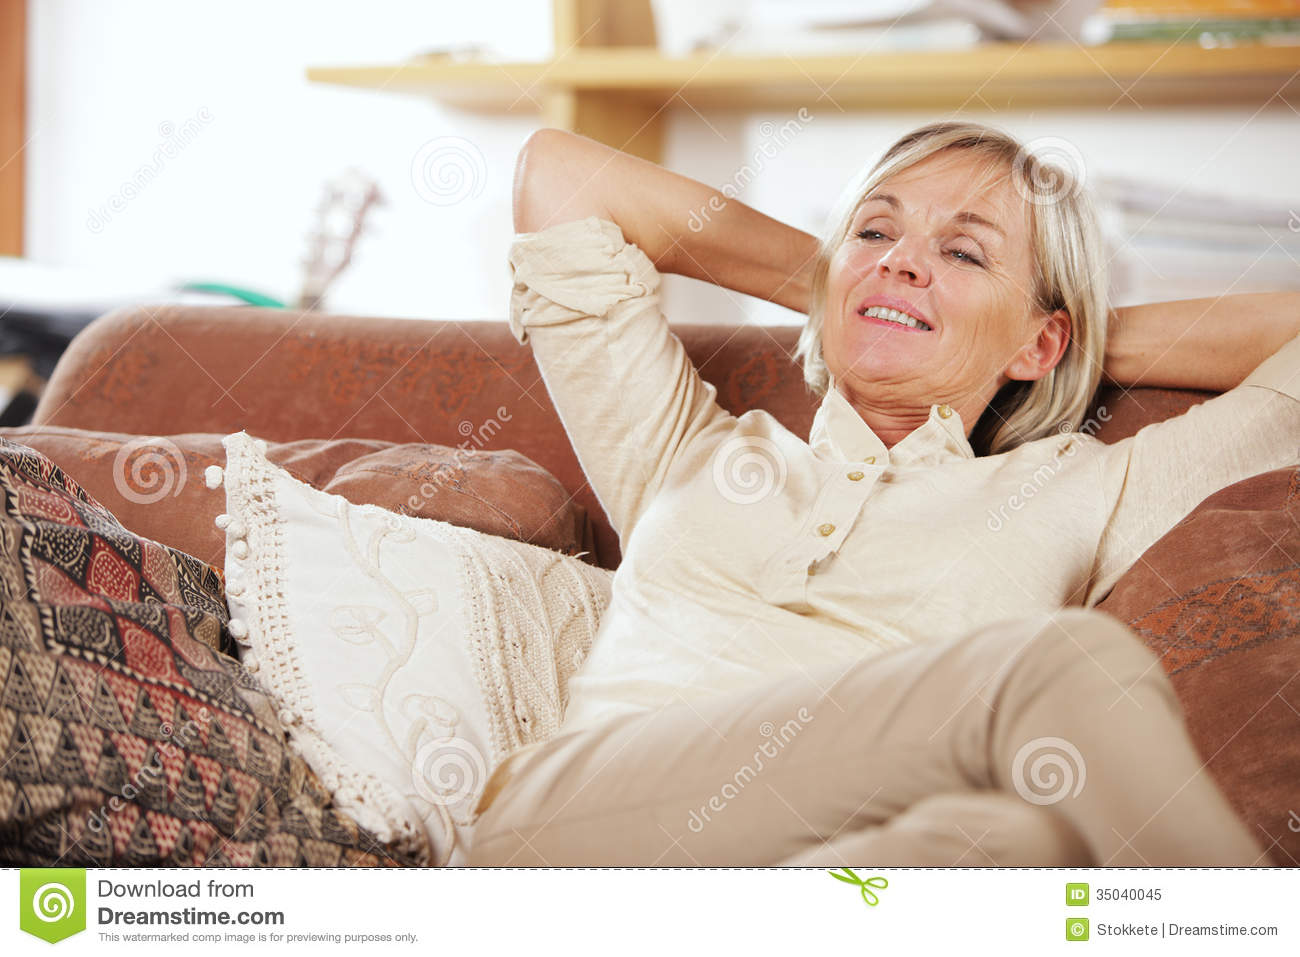 Relaxing at home stock image. Image of people, casual ...